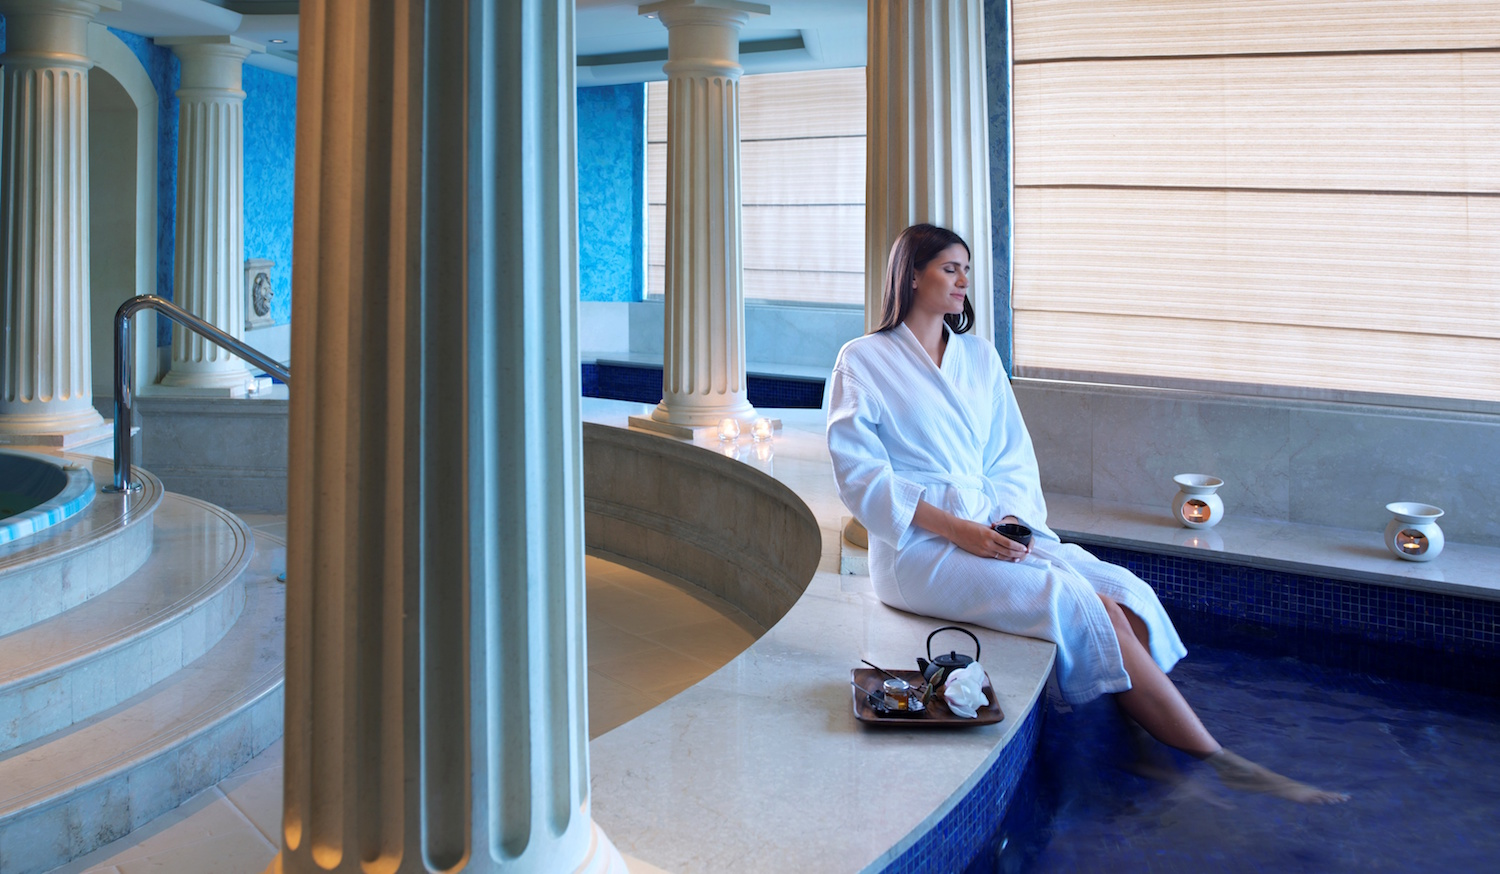 Spa deals in Dubai at The Spa at The Fairmont Dubai